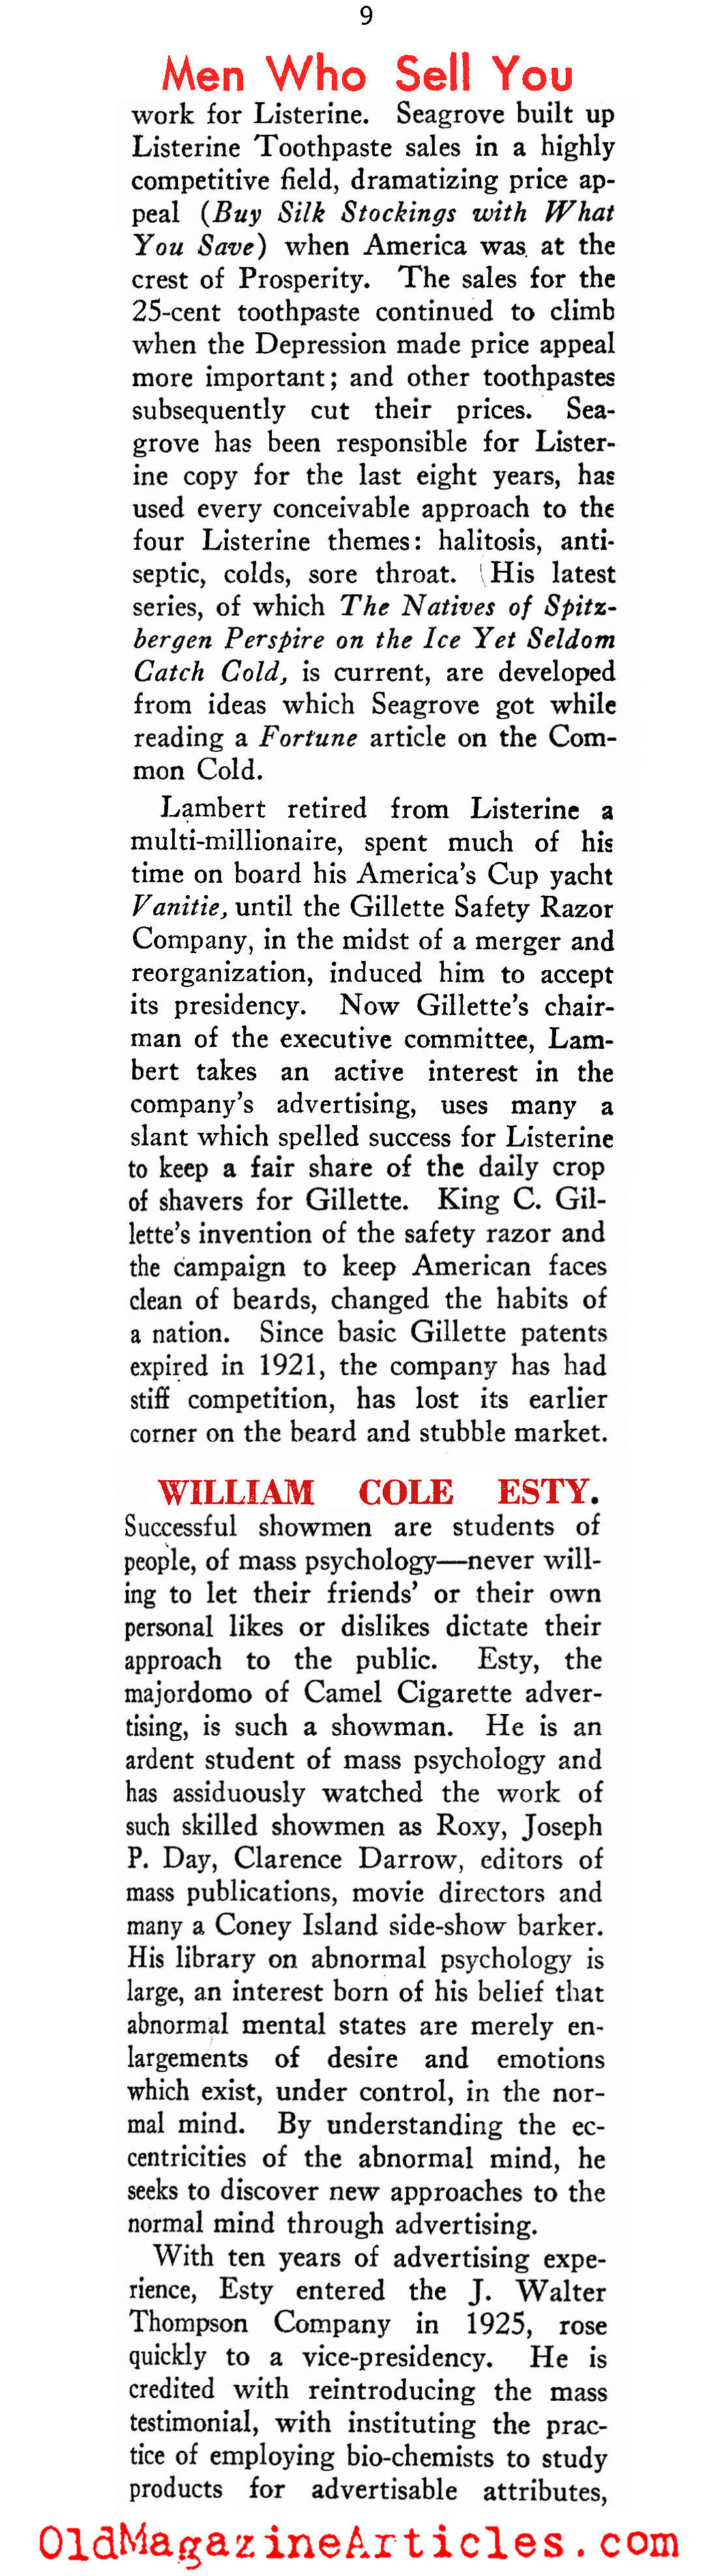 Winners in the 1920s Ad Game (New Outlook Magazine, 1934)